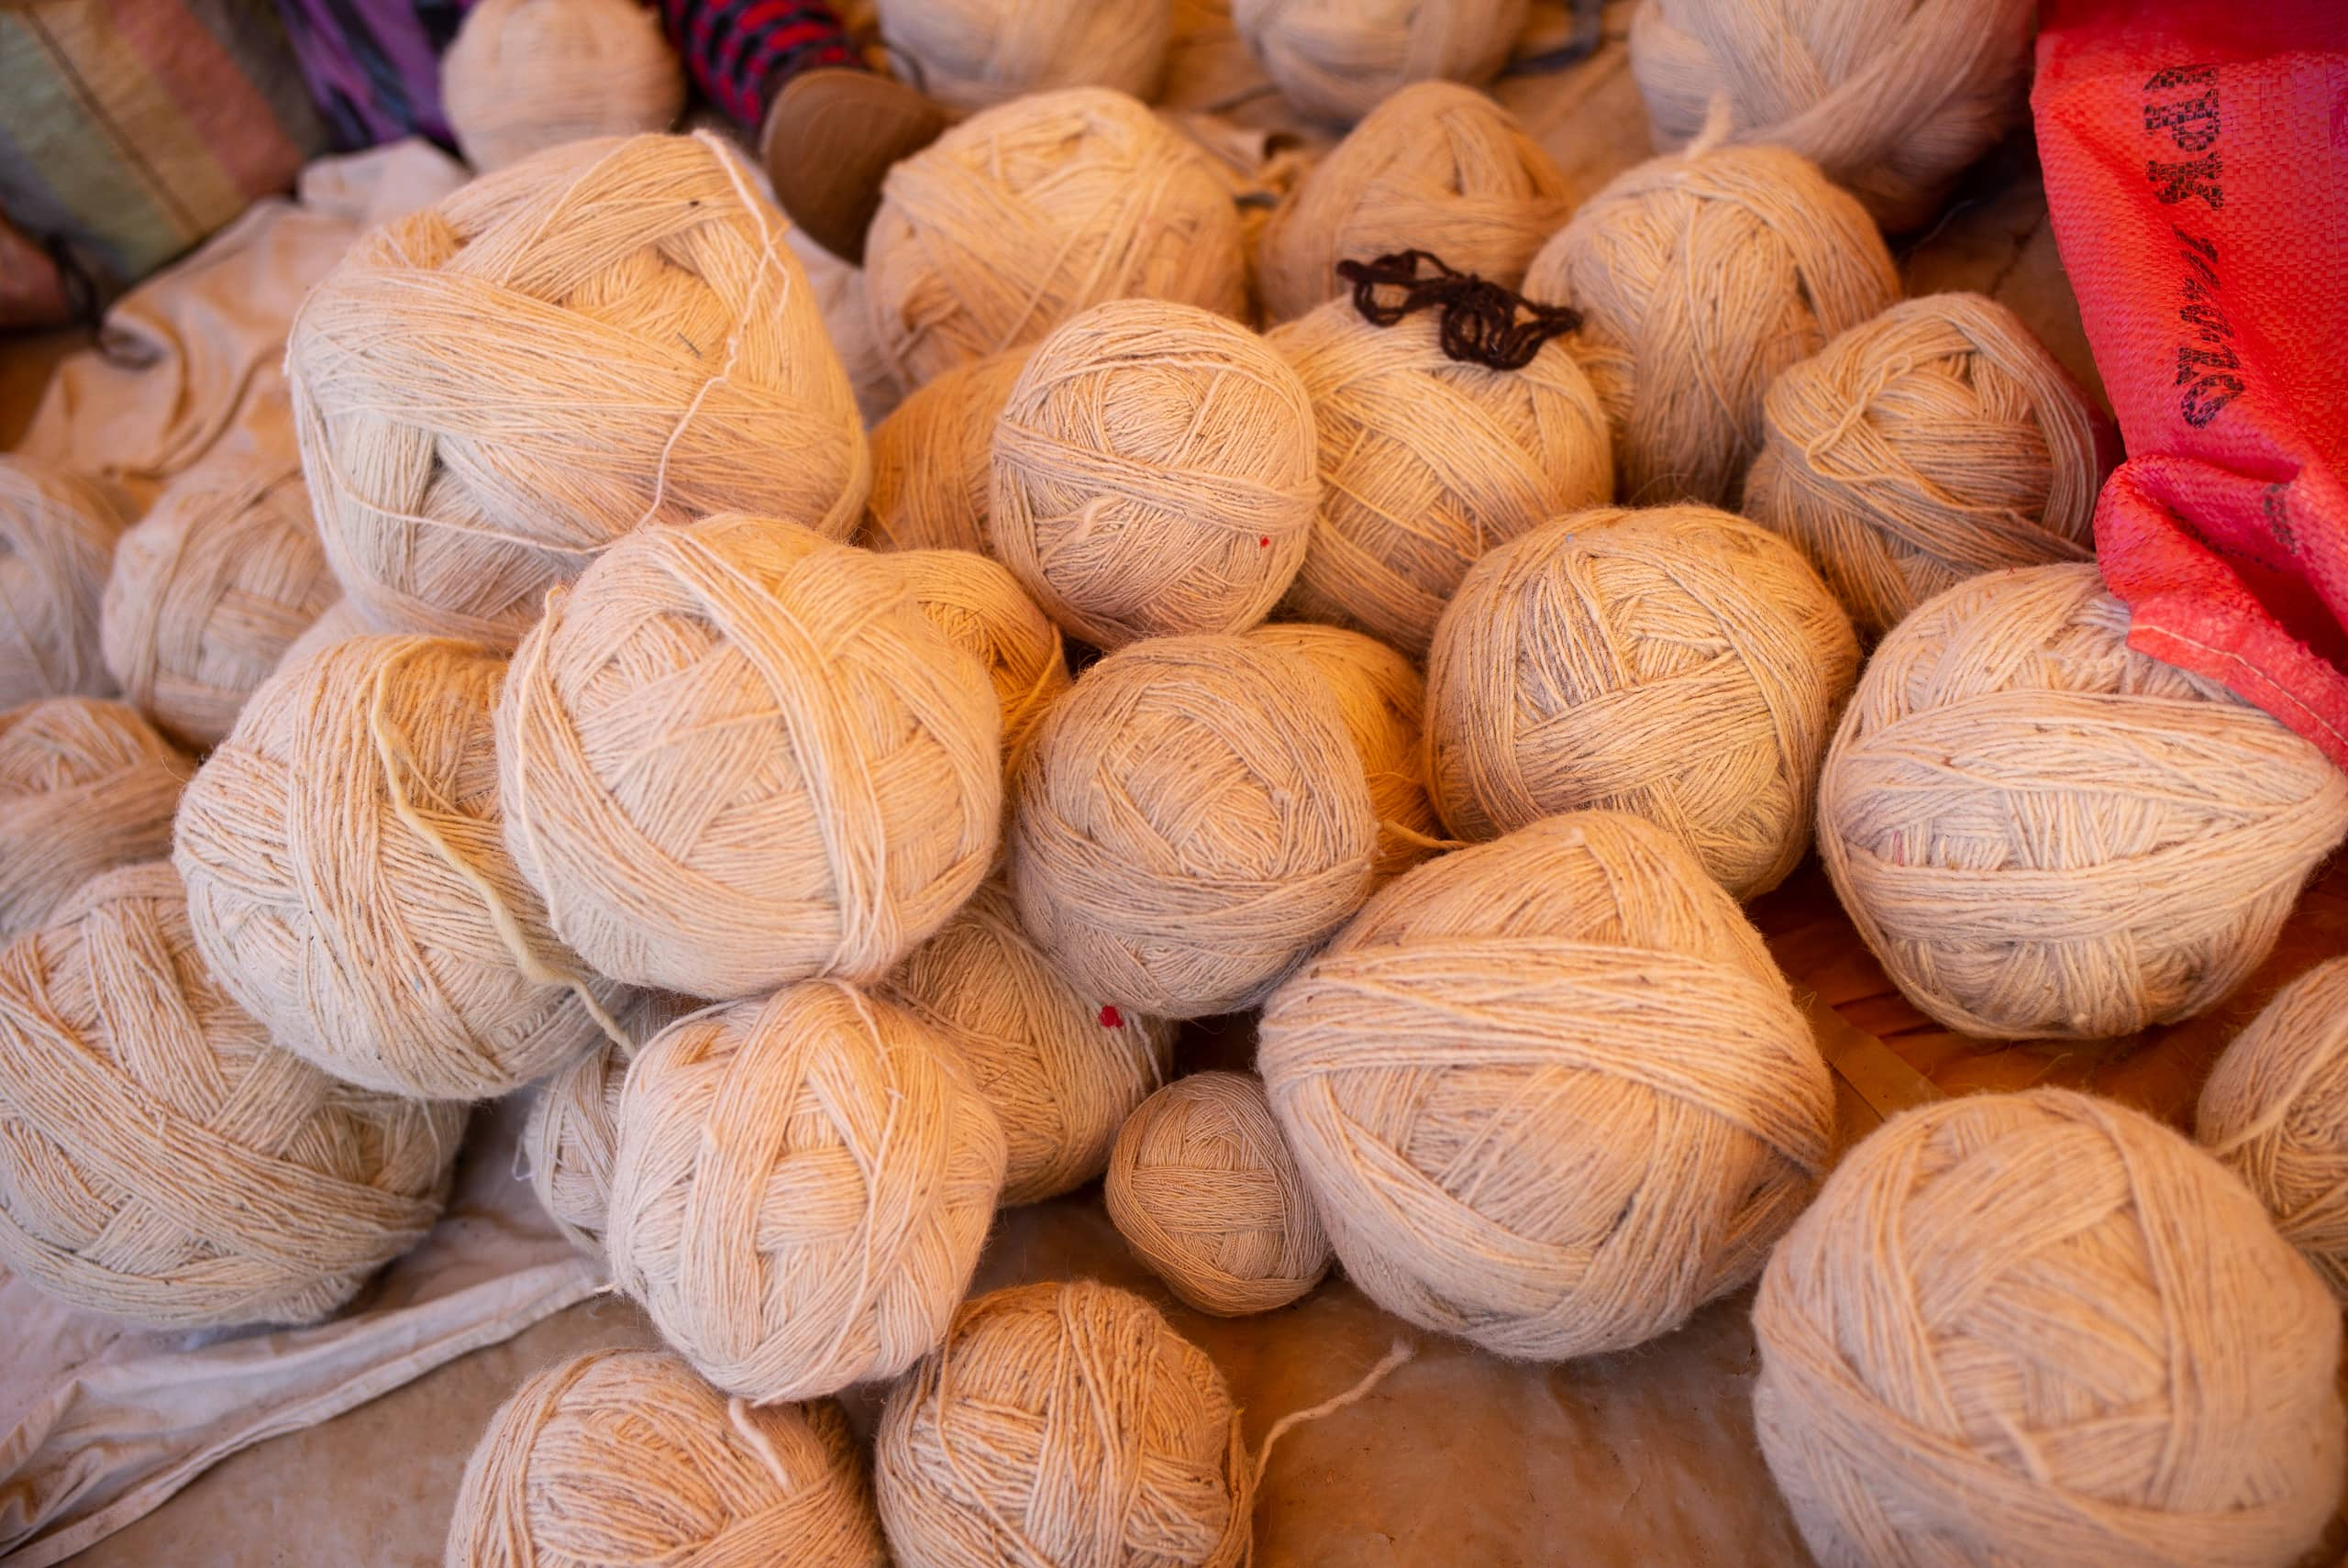 /img/pages/atlas-weavers/2/Balls_of_wool_in_the_souk_of_Mrirt,_Middle_Atlas.jpg